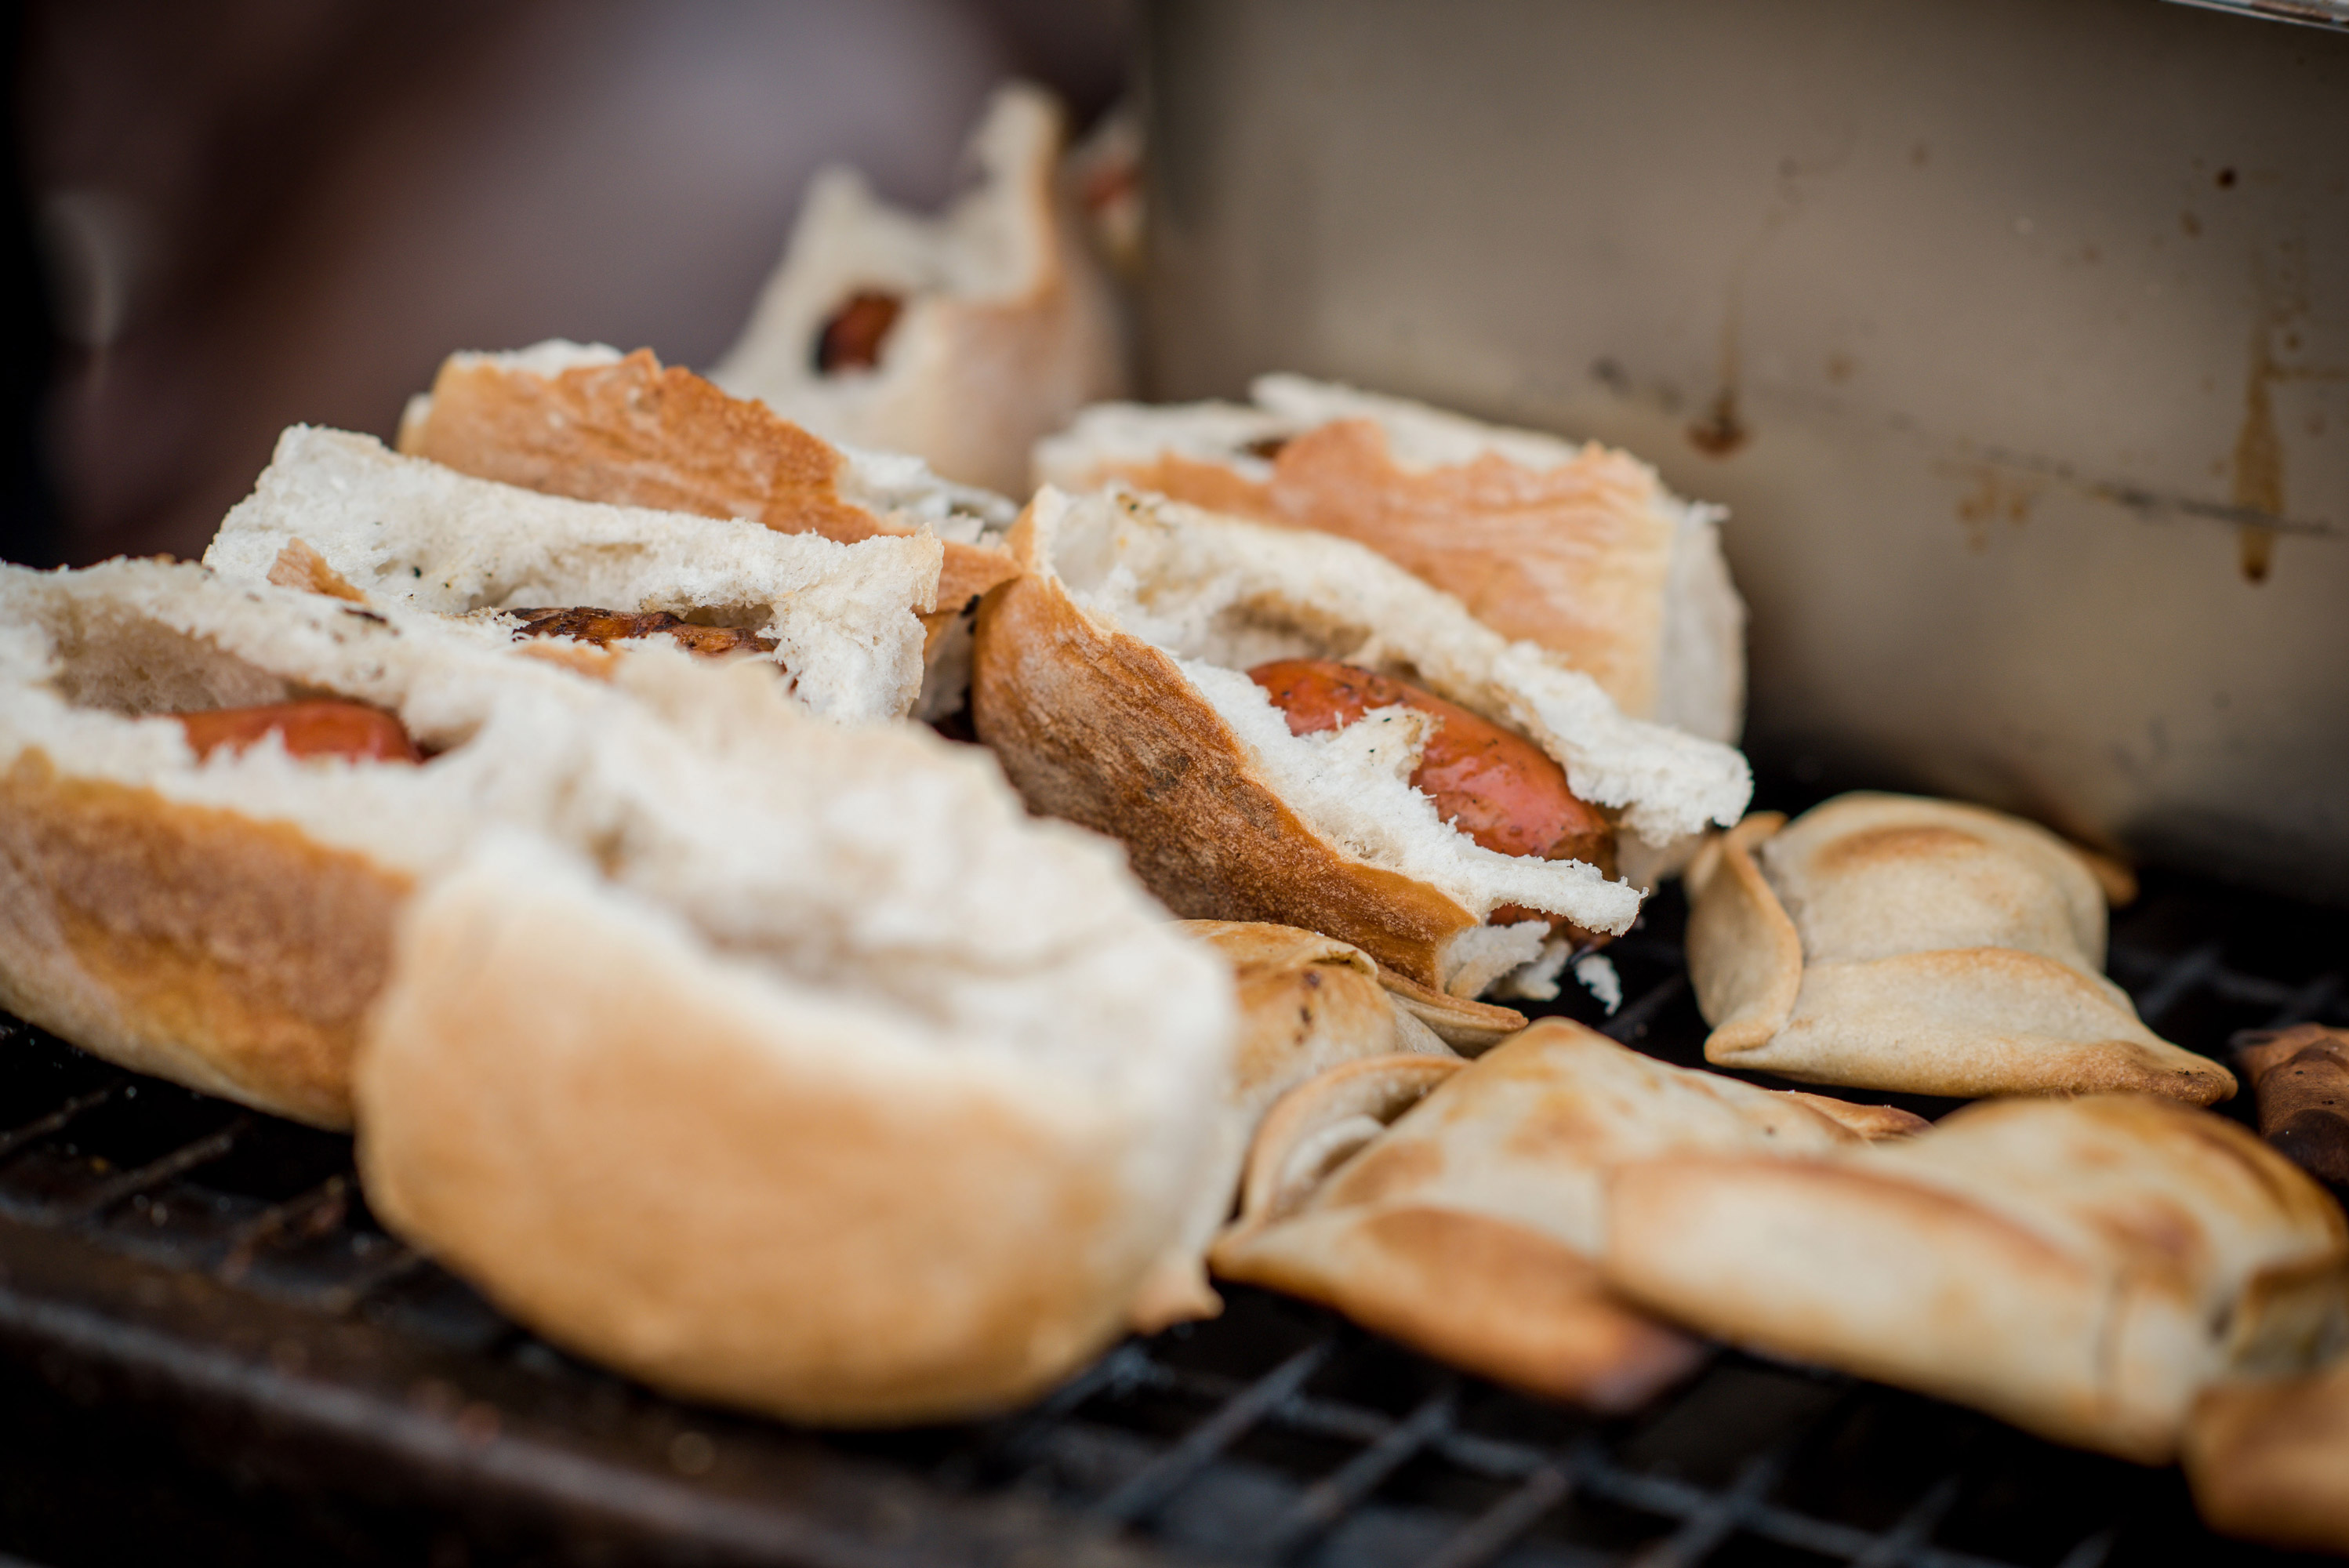 Choripan or bread and chorizo alongside some empanadas on the grill for a barbecue at the winery.